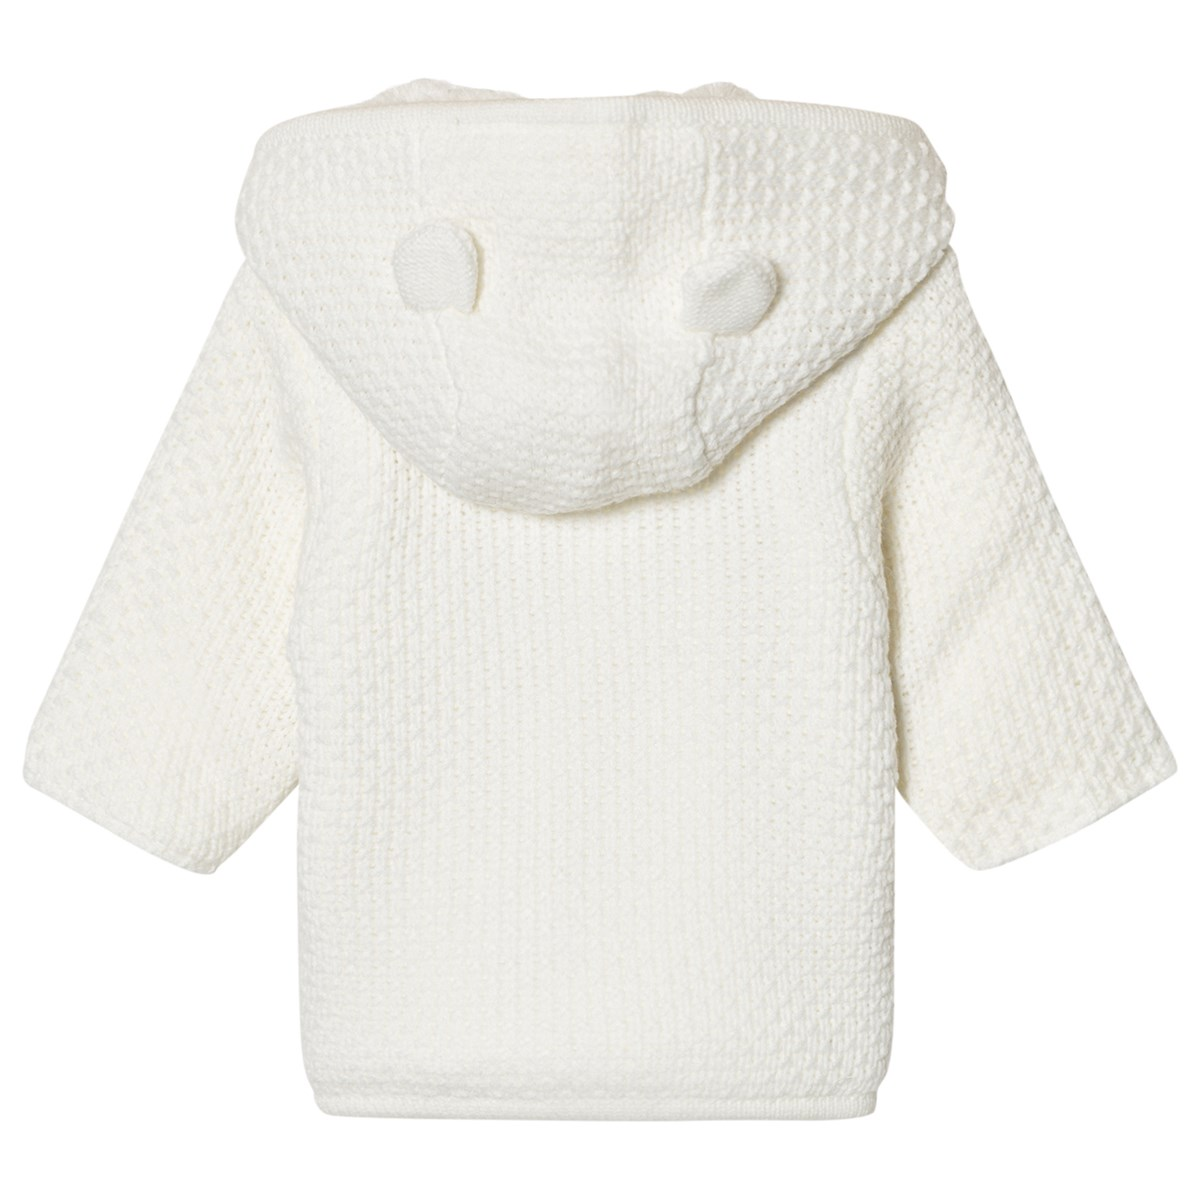 dad10833c2e9 Absorba Cream Knit Hooded Coat with Faux Fur Lining